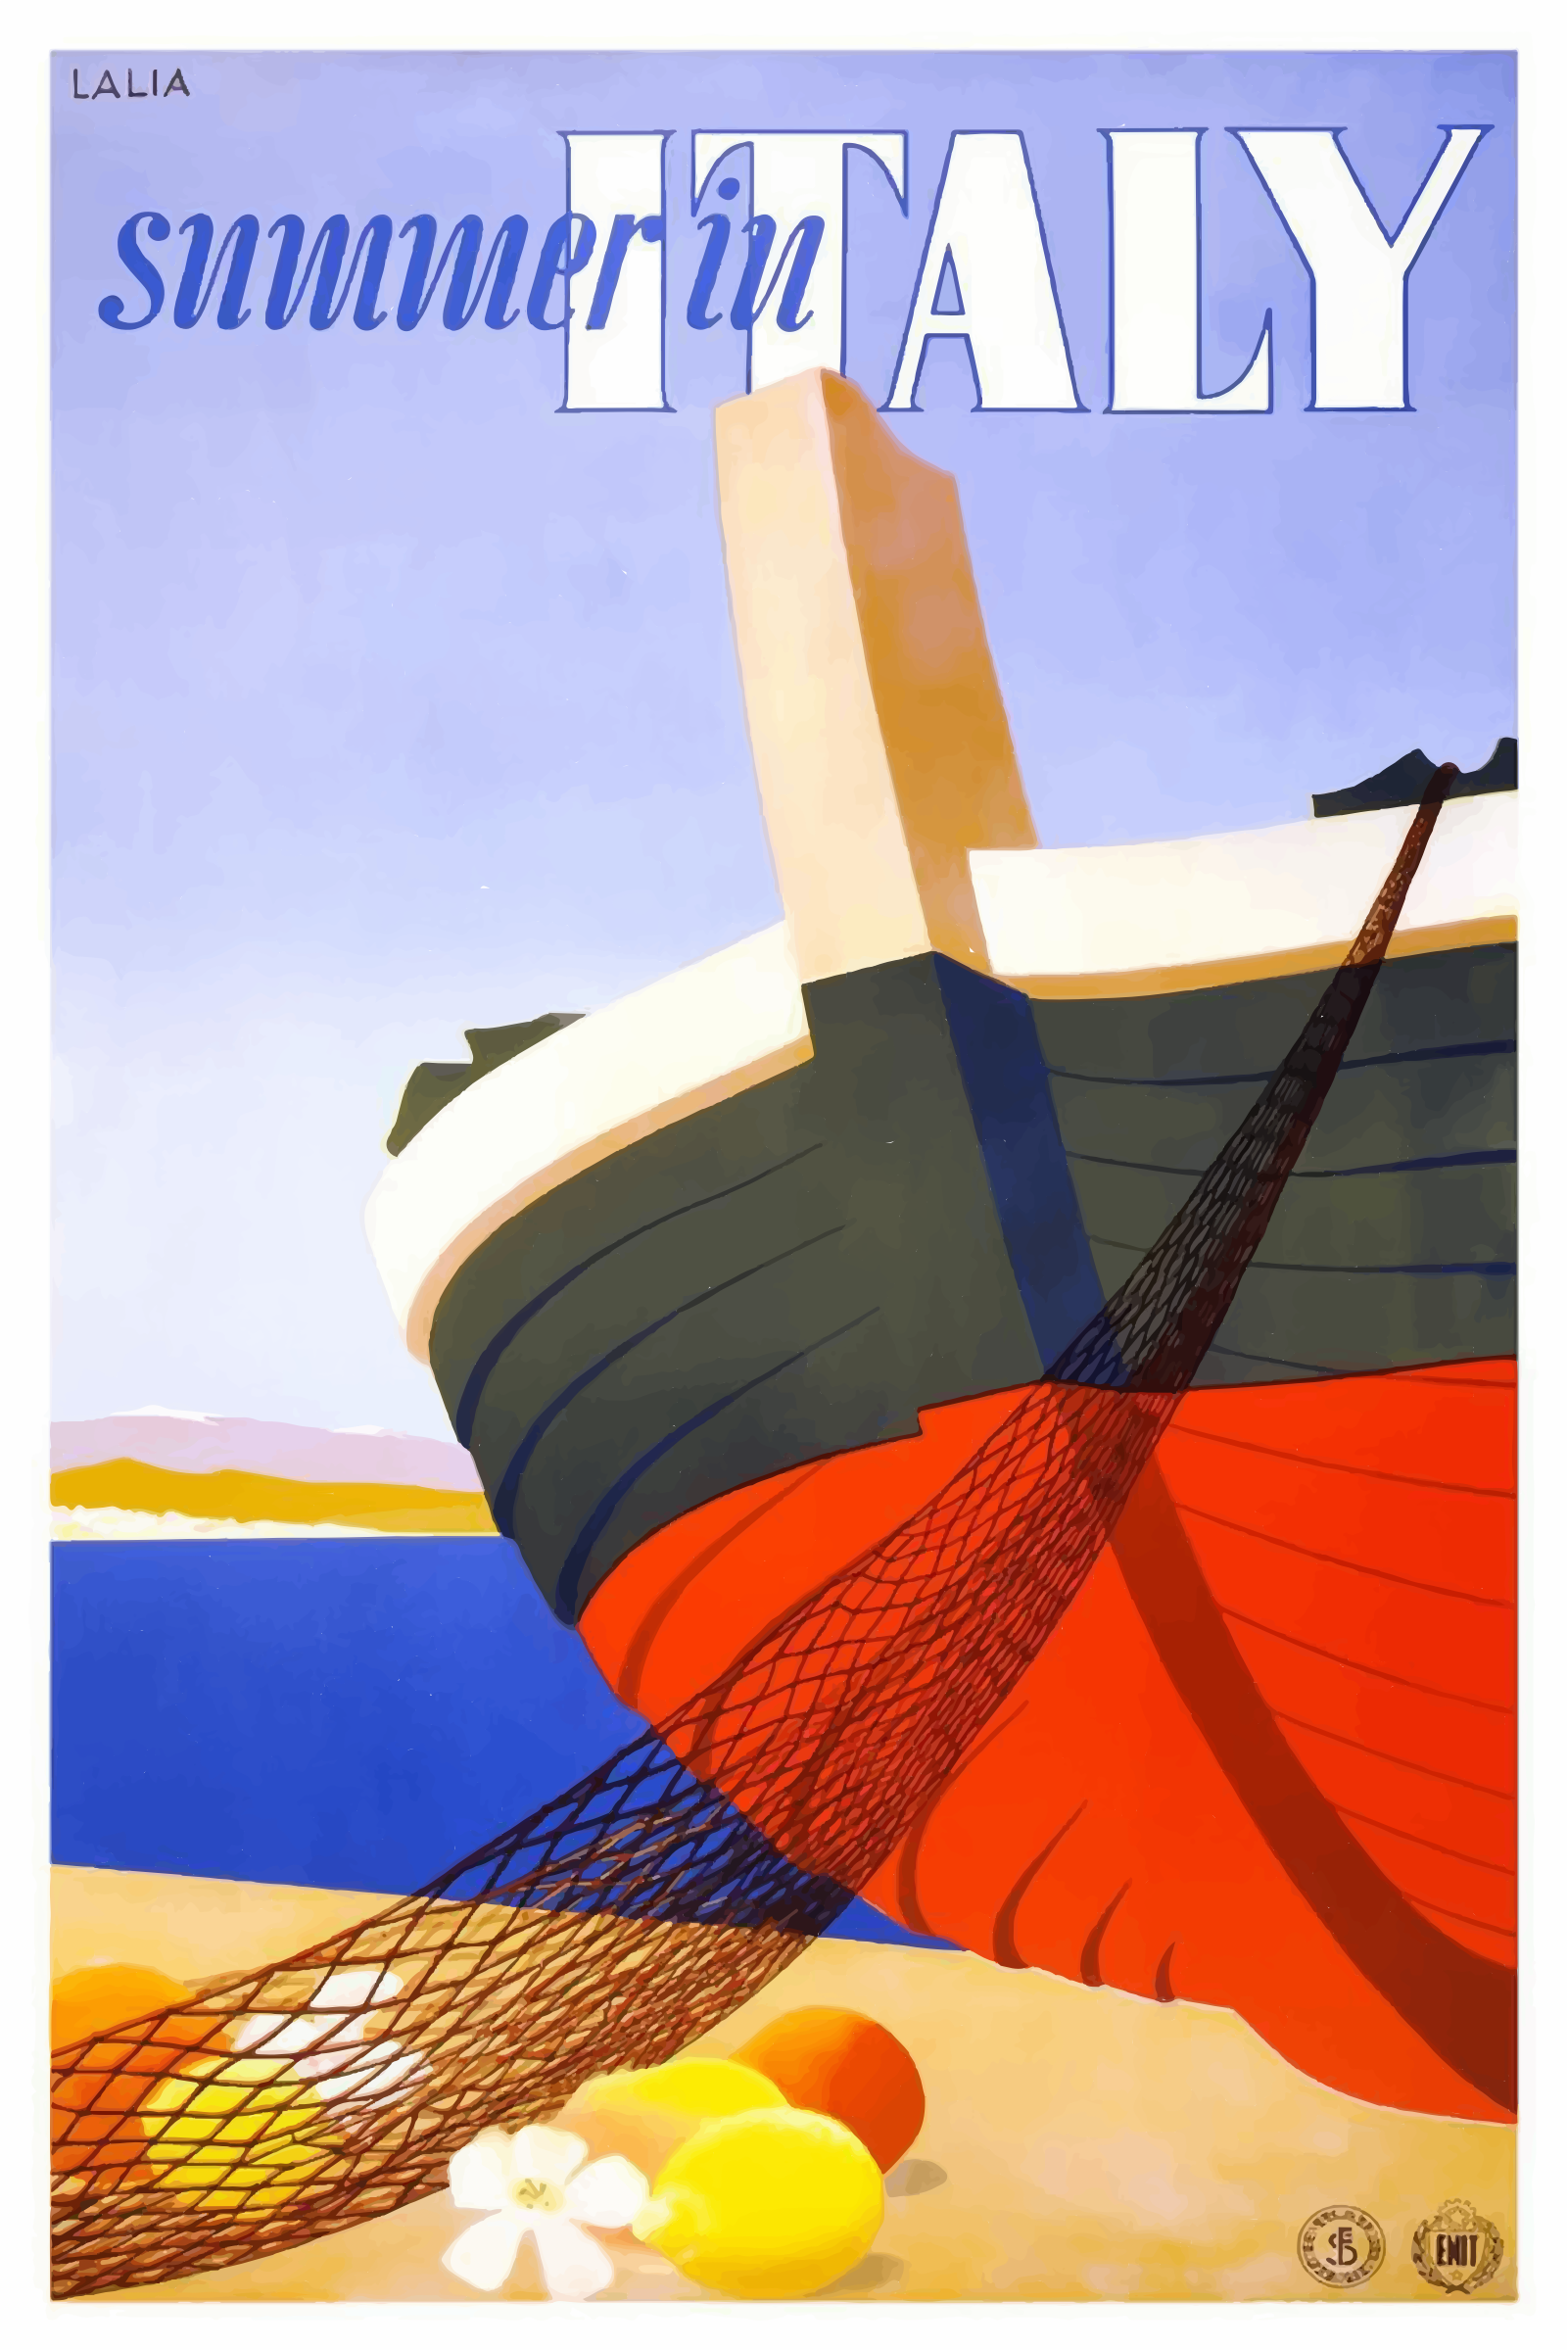 Vintage Travel Poster Italy by GDJ